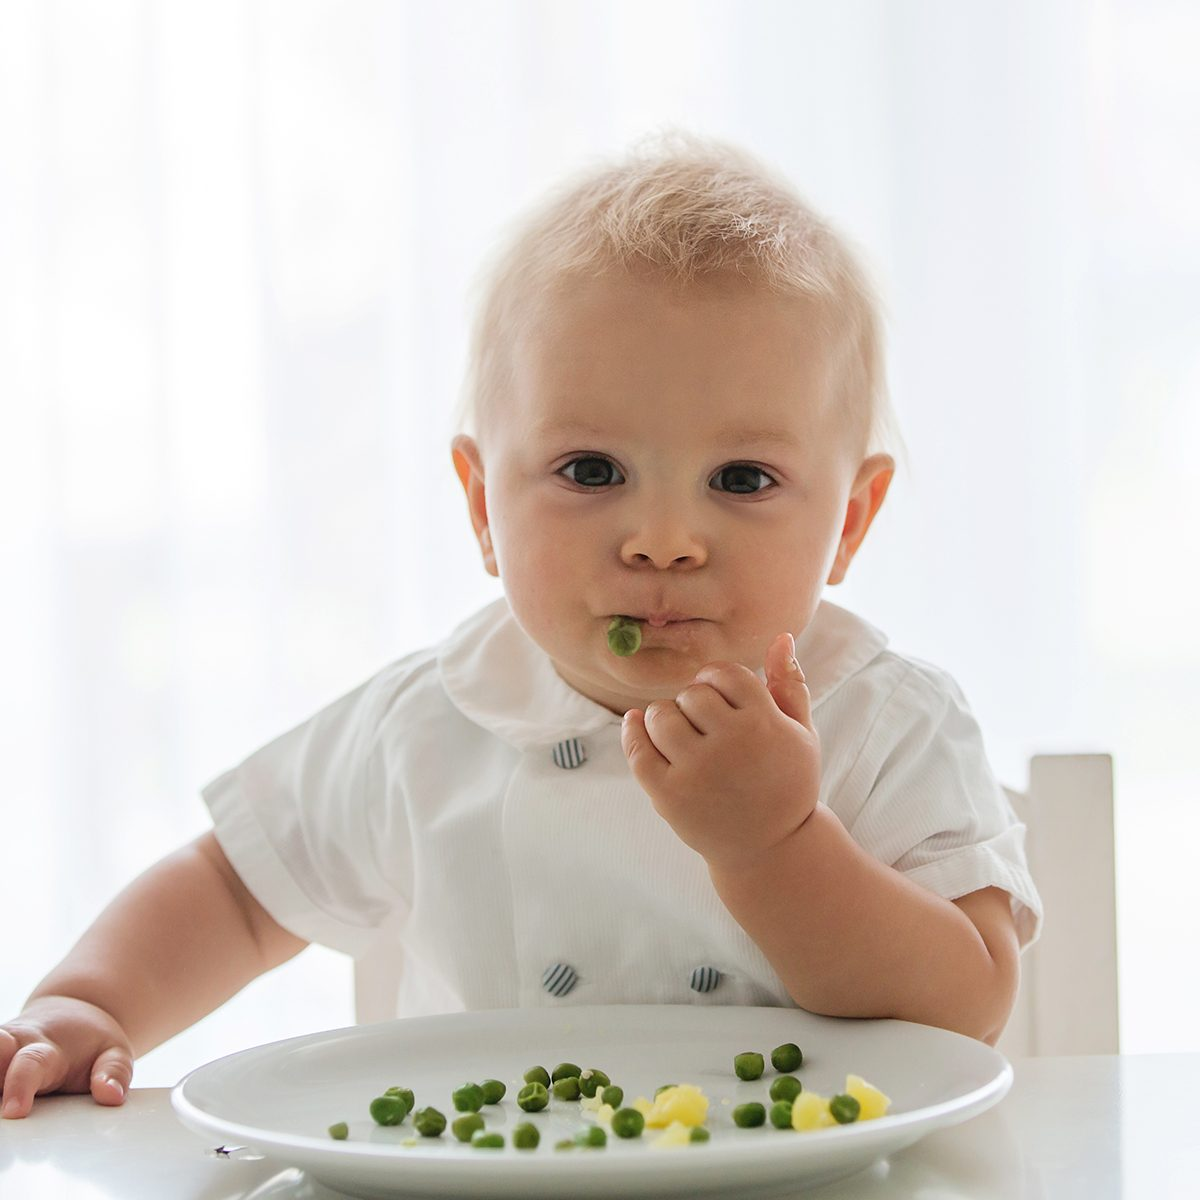 Toddler child, cute boy in white shirt, eating pea at home